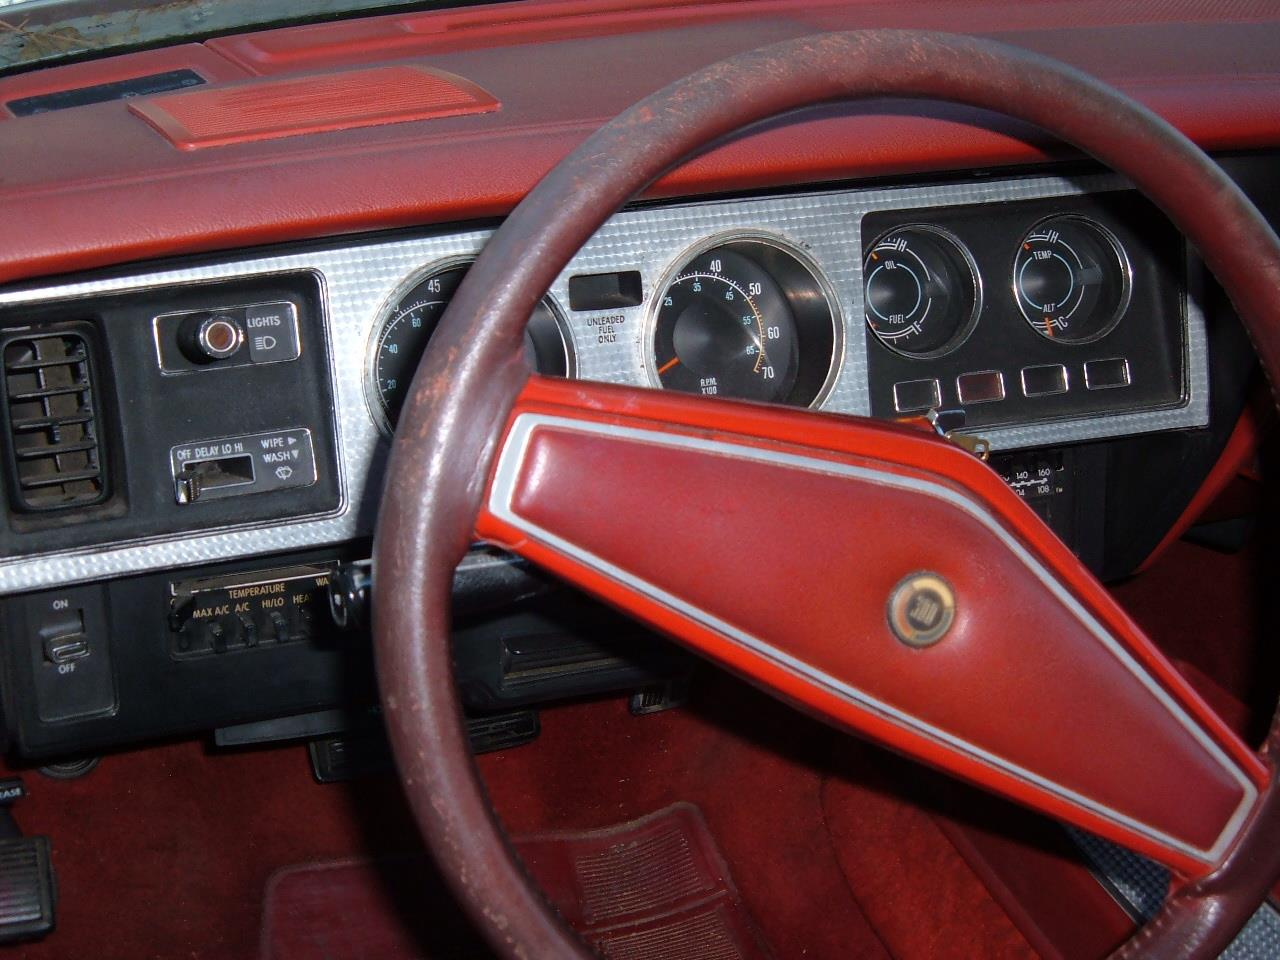 Large Picture of '79 Chrysler 300 located in Georgia - $4,500.00 Offered by a Private Seller - C2IN